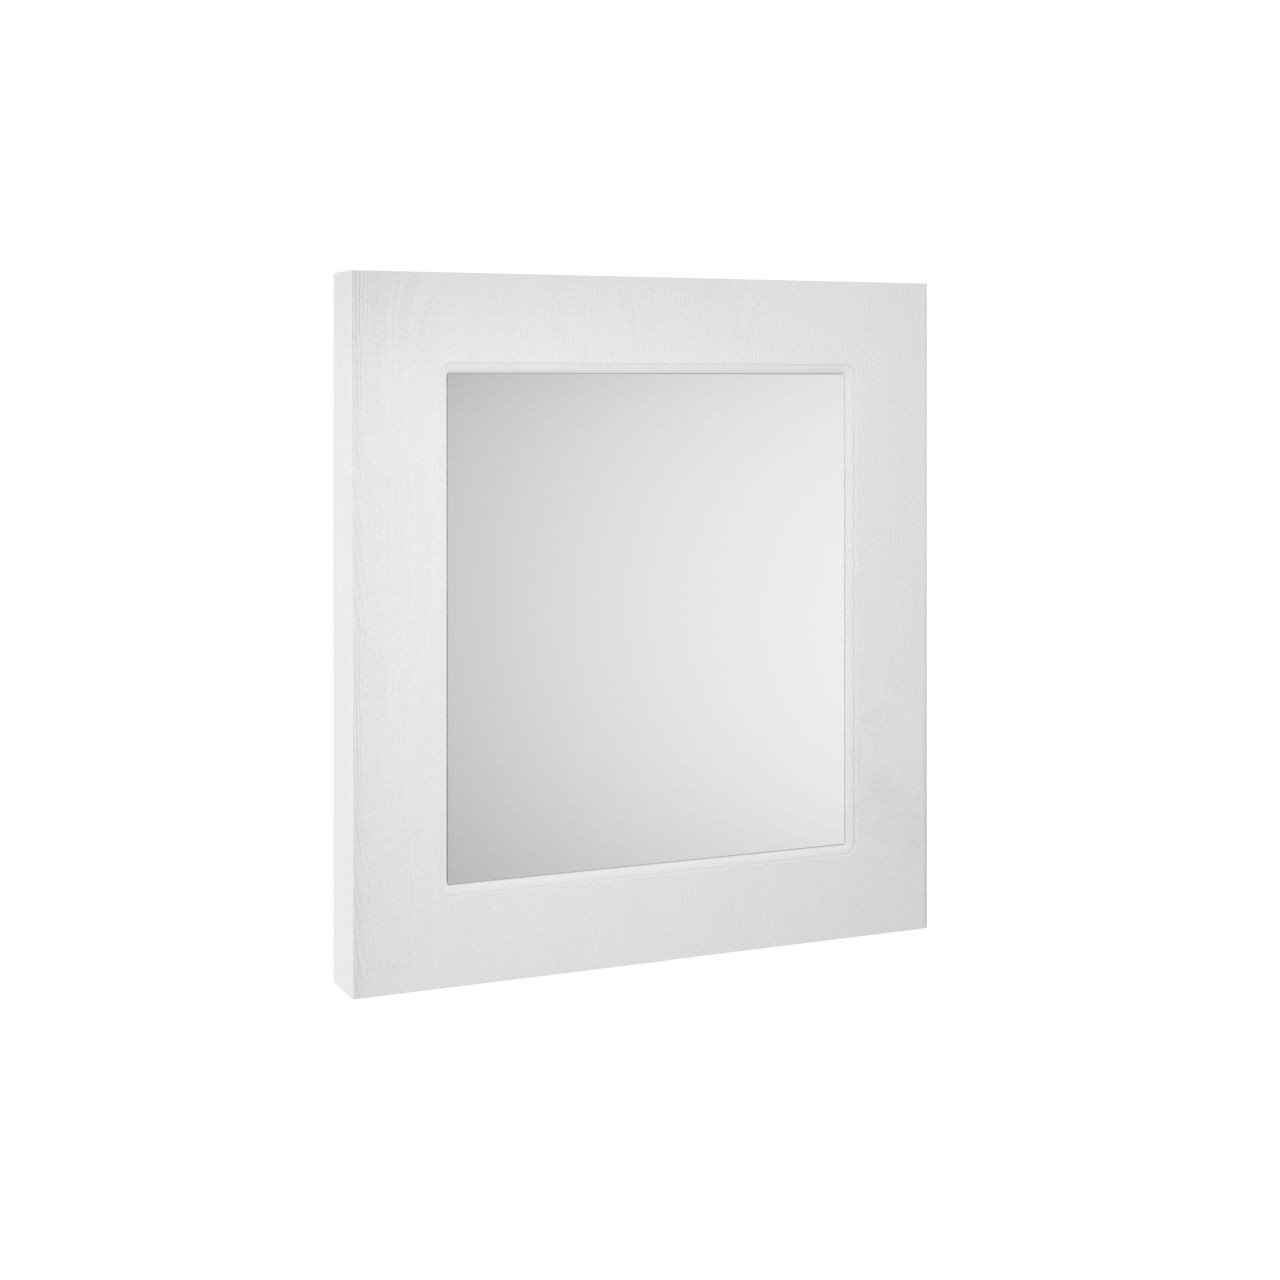 Nuie York White Ash 600mm Flat Mirror - OLF114